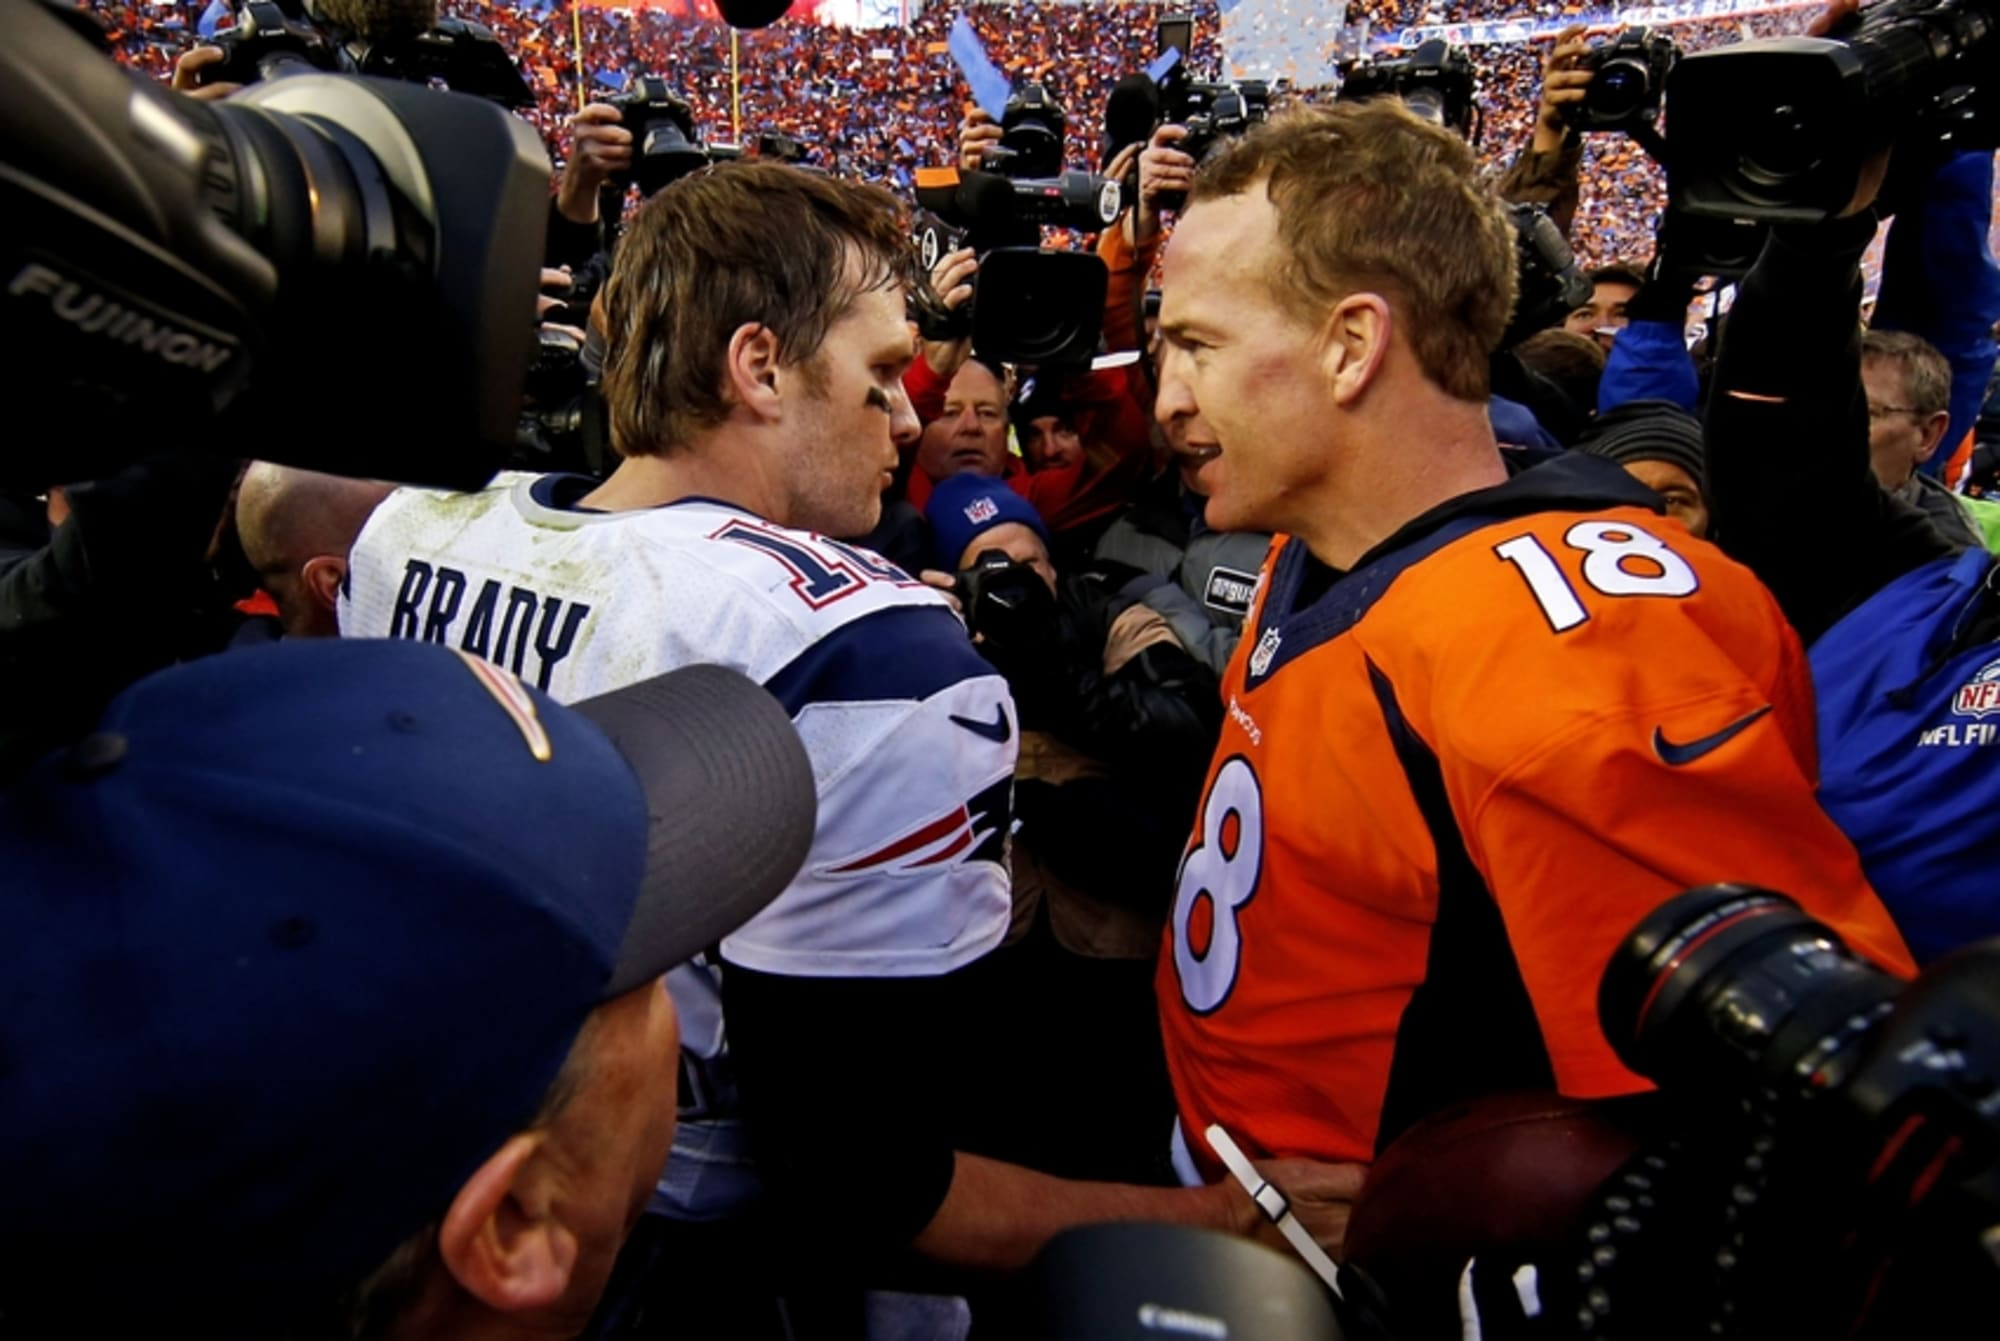 New England Patriots: Tom Brady Catches Up with Peyton Manning